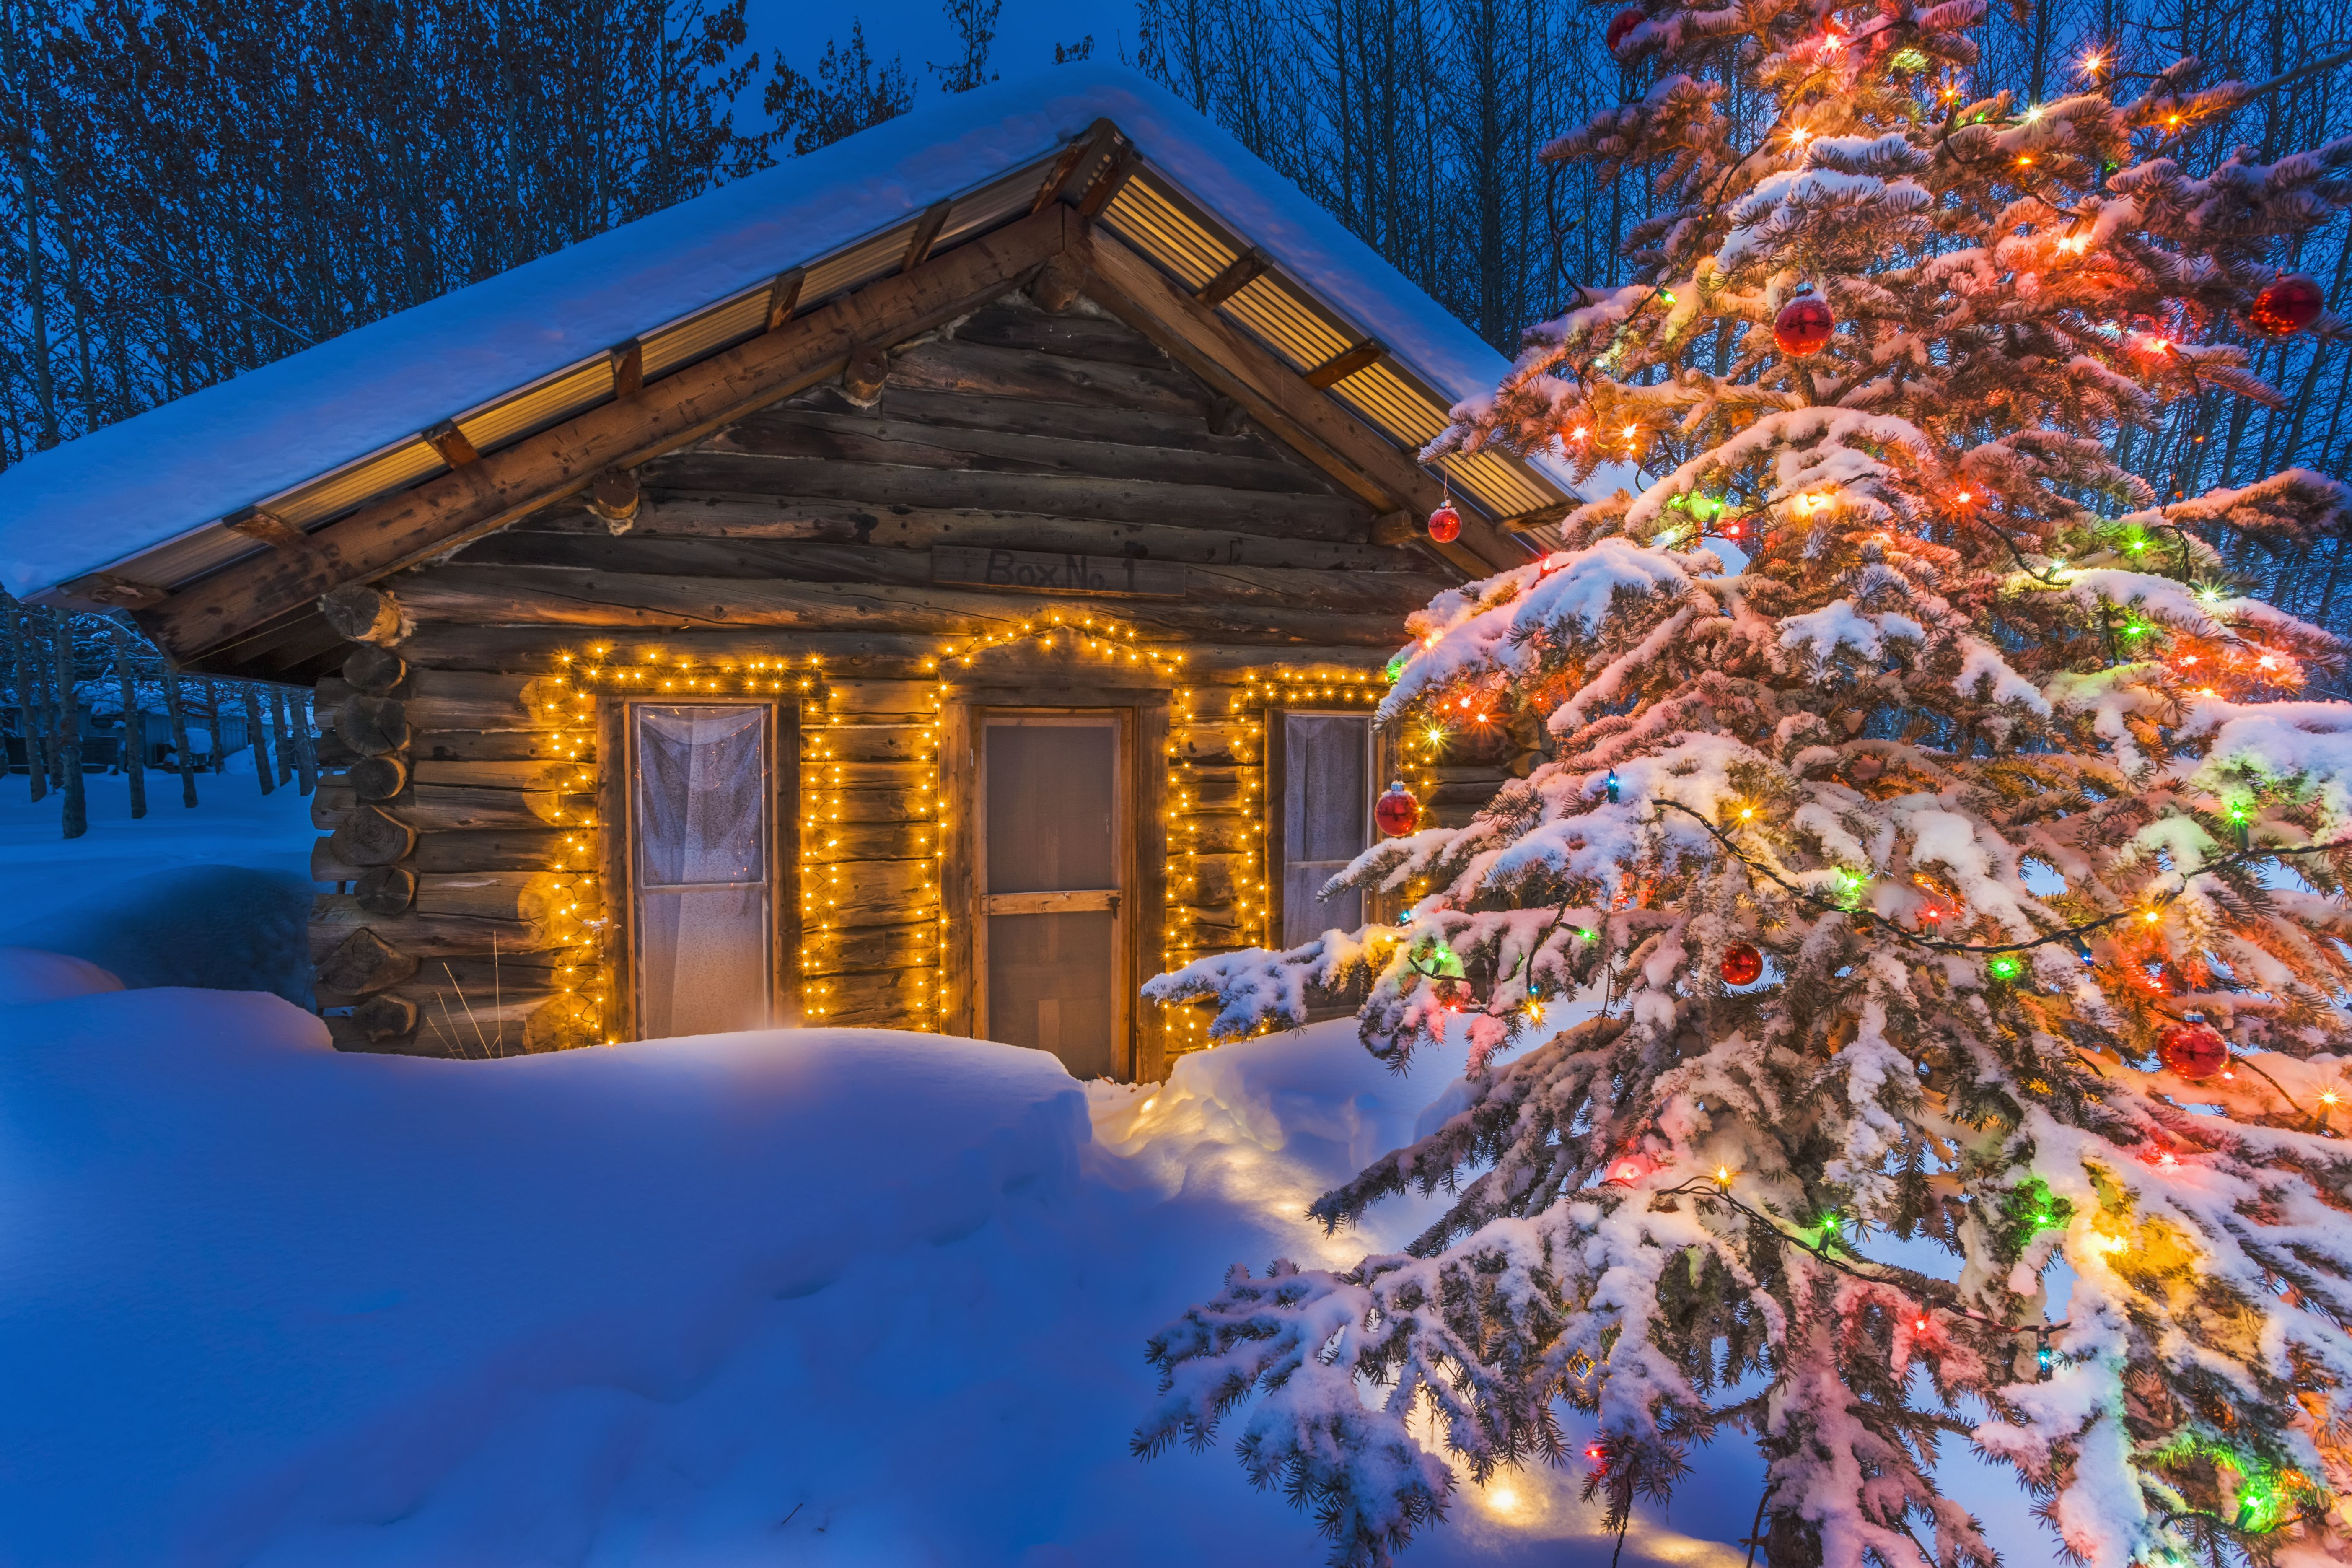 small one-story cabin outlined in colored lights with a fir tree in colored lights in the foreground